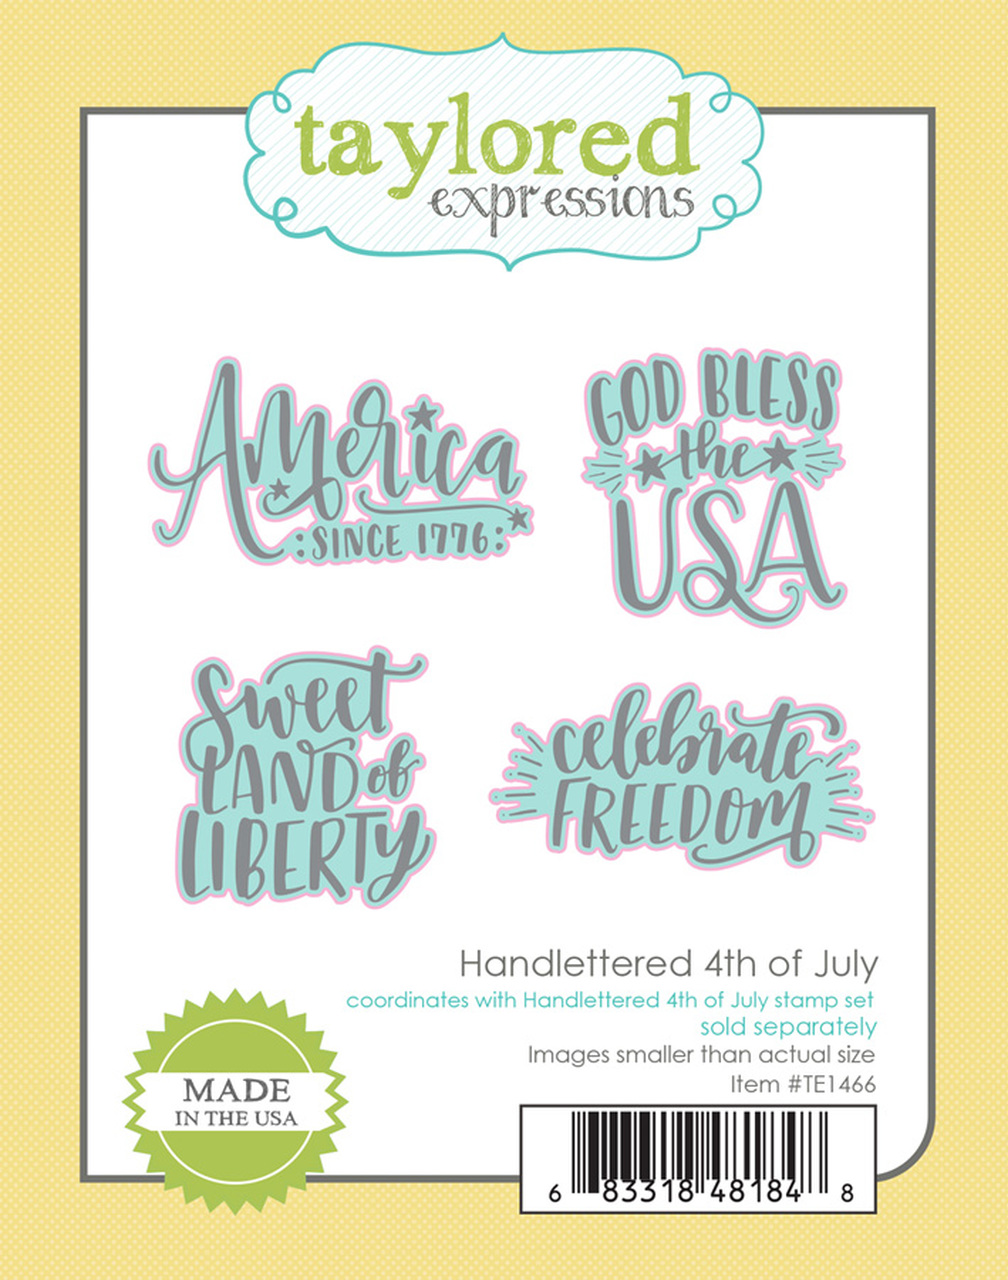 *NEW* - Taylored Expression - HANDLETTERED 4TH OF JULY DIES